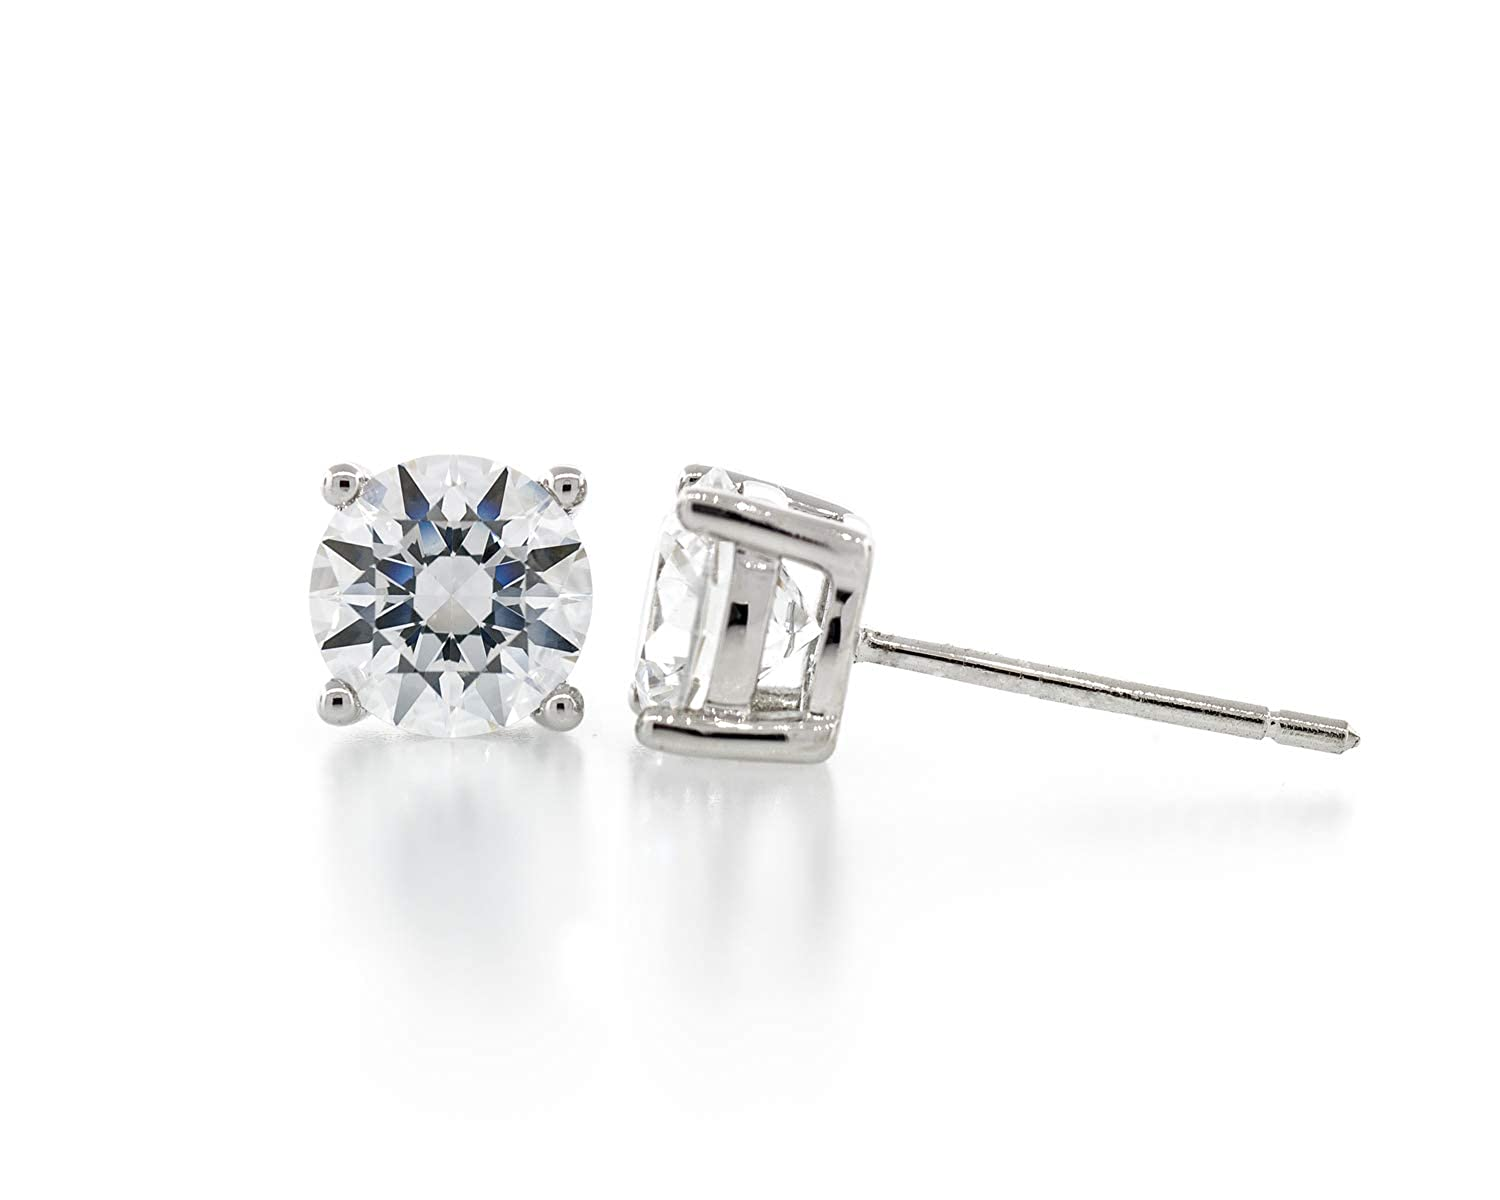 9mm Acacia Collection Premium Quality Simulated Diamond CZ Hypoallergenic Nickel Free Sterling Silver Stud Earrings Round Ideal Cut 5.5 Carat ctw